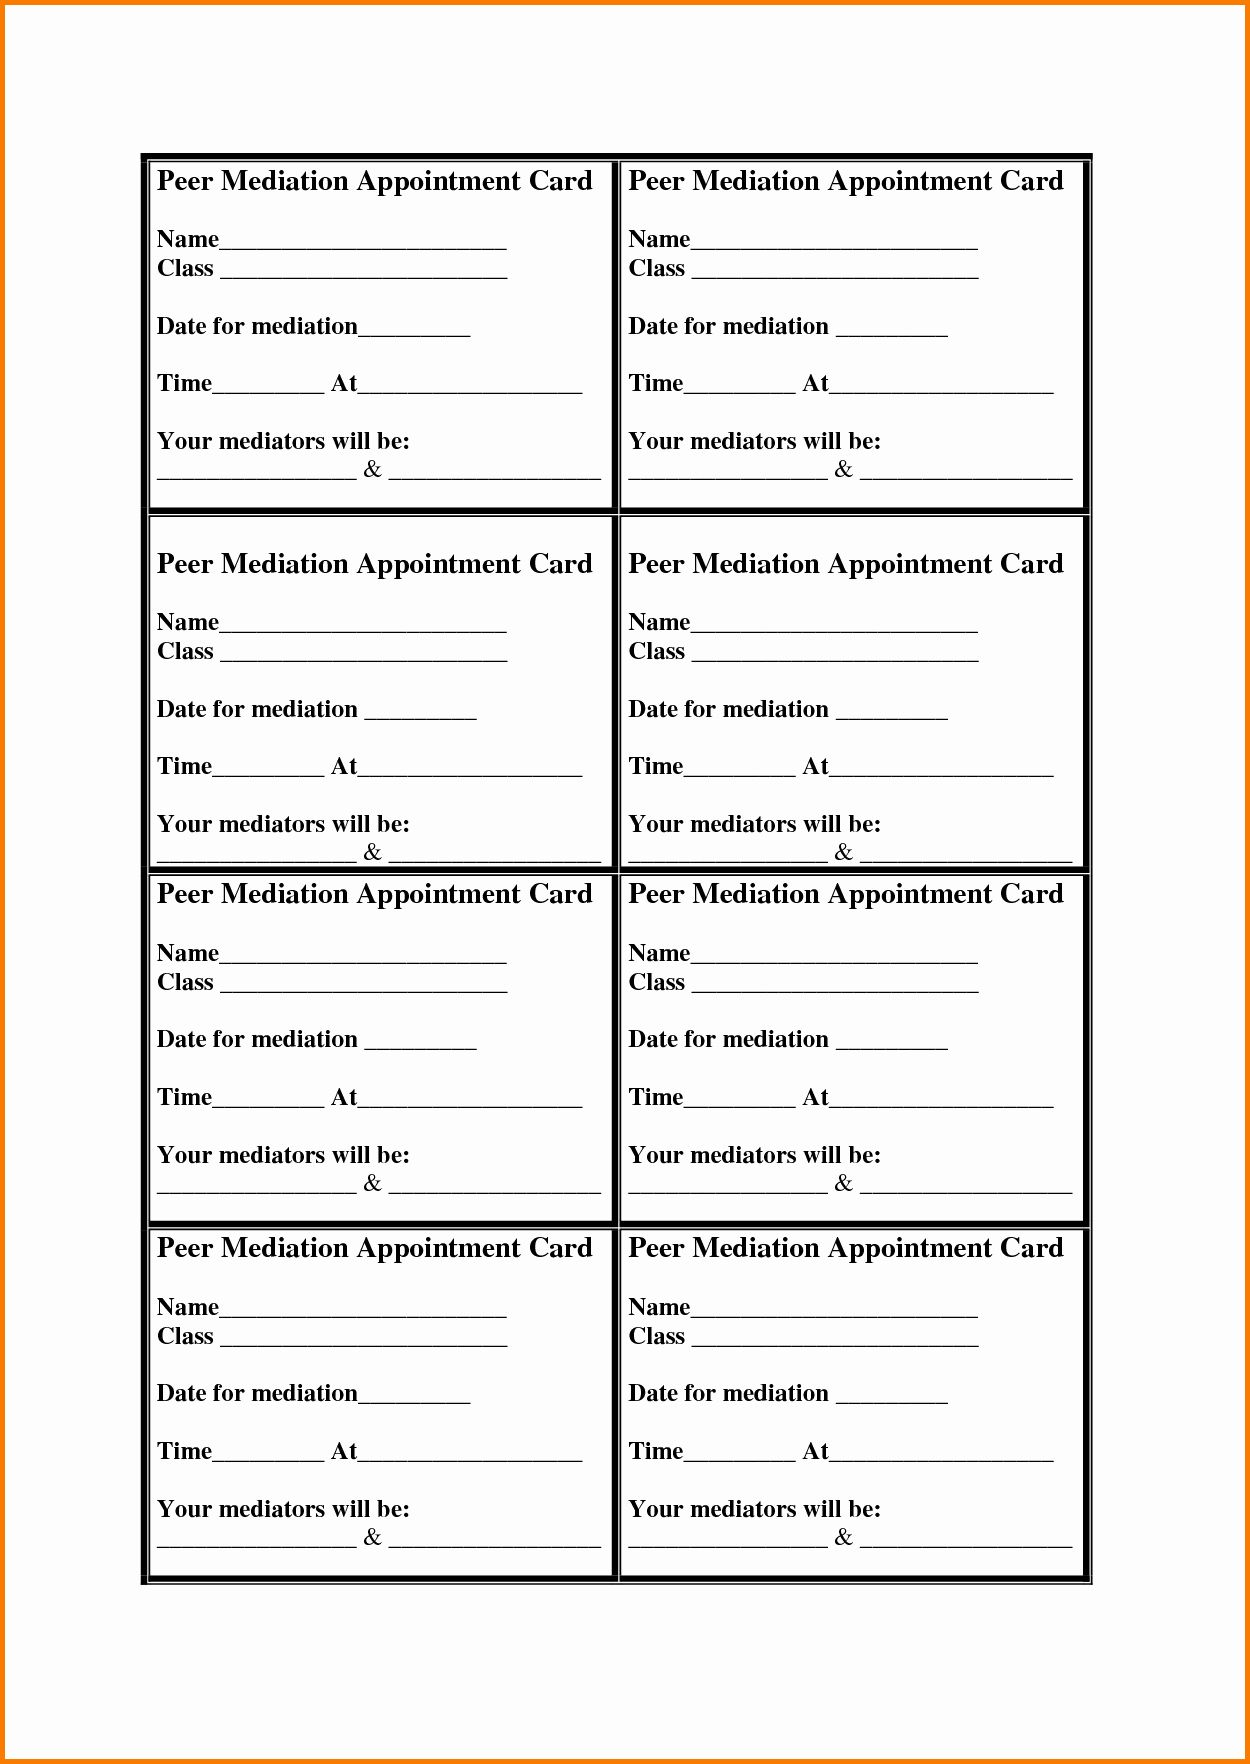 Appointment Reminder Card Template Free Fresh Appointment Cards Template Card Templates Free Appointment Cards Card Template Appointment reminder cards template free